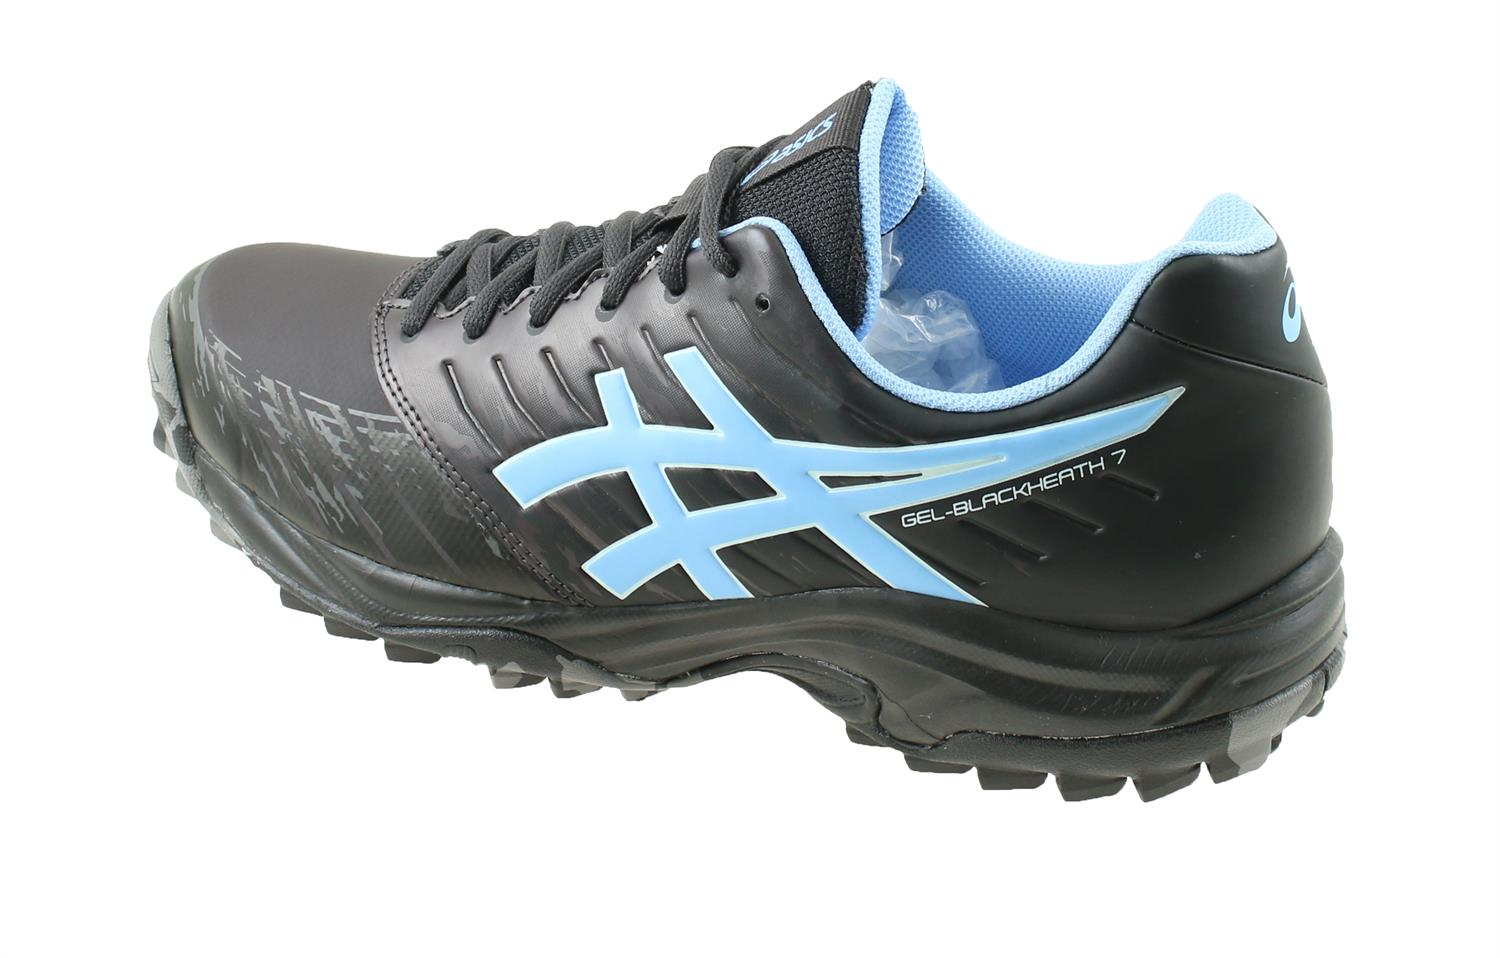 asics gel blackheath 7 dames